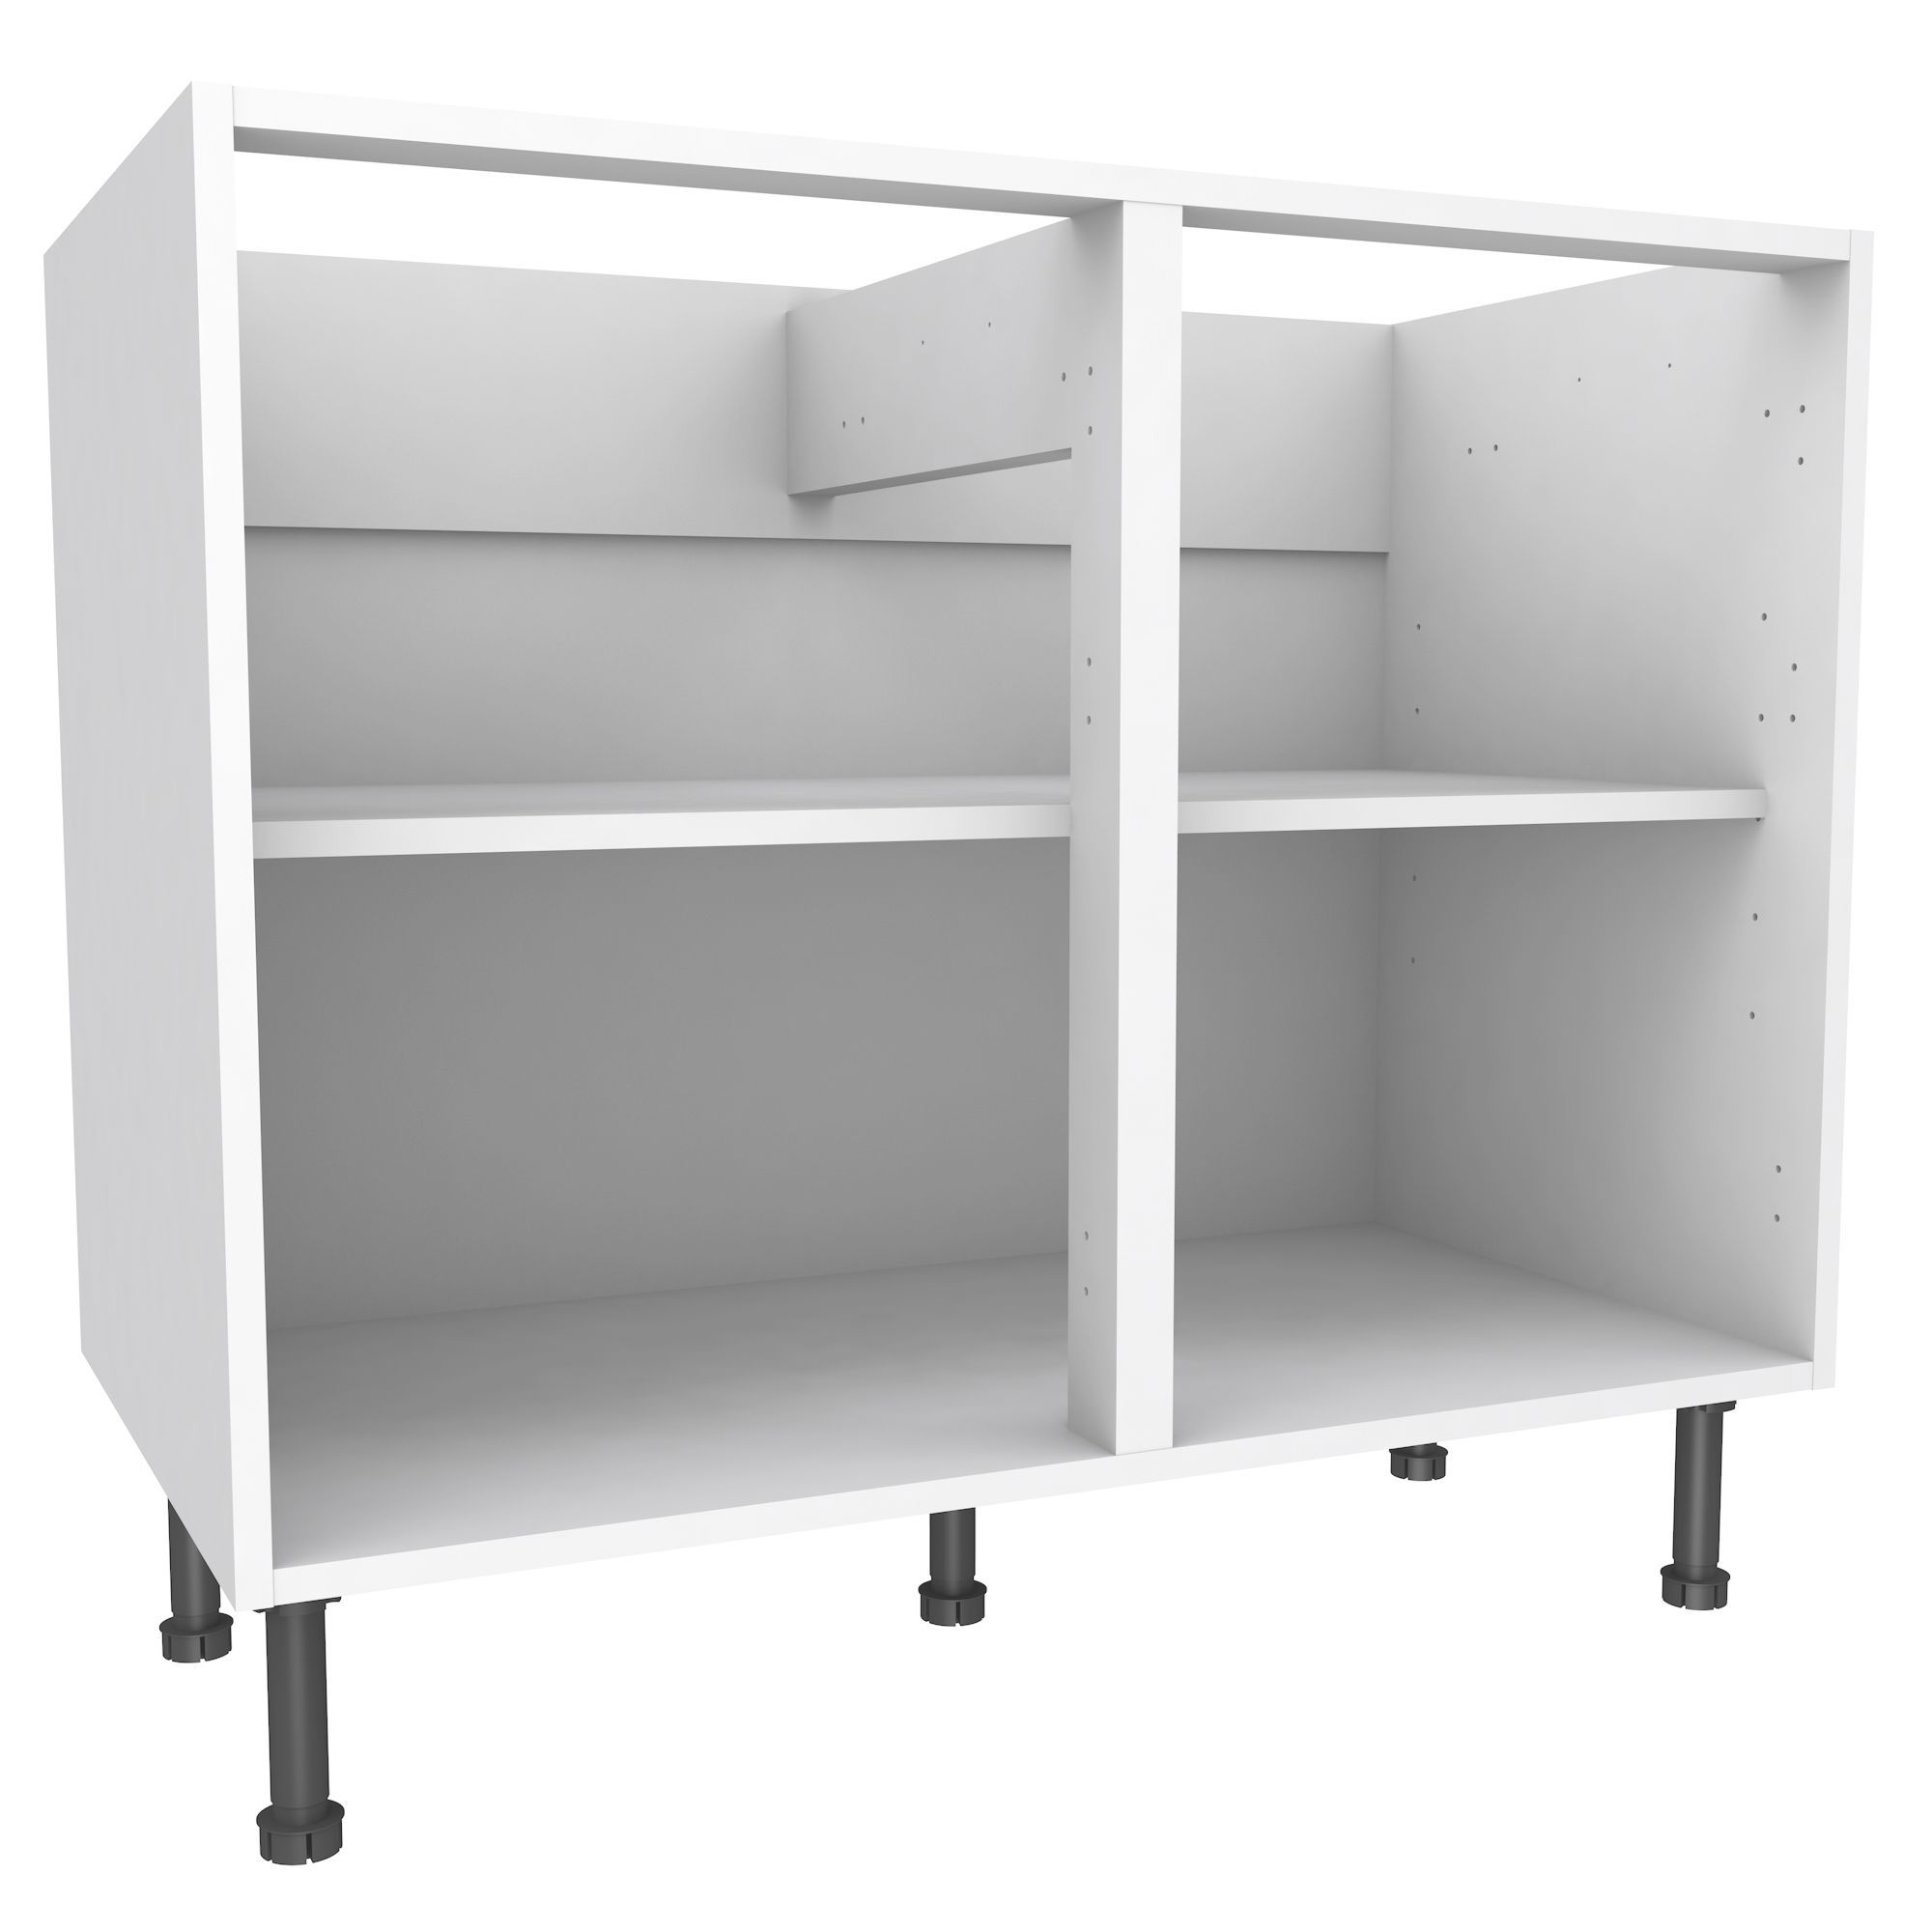 Awesome Cooke U0026 Lewis White Standard Base Cabinet (W)1000mm | Departments | DIY At  Bu0026Q